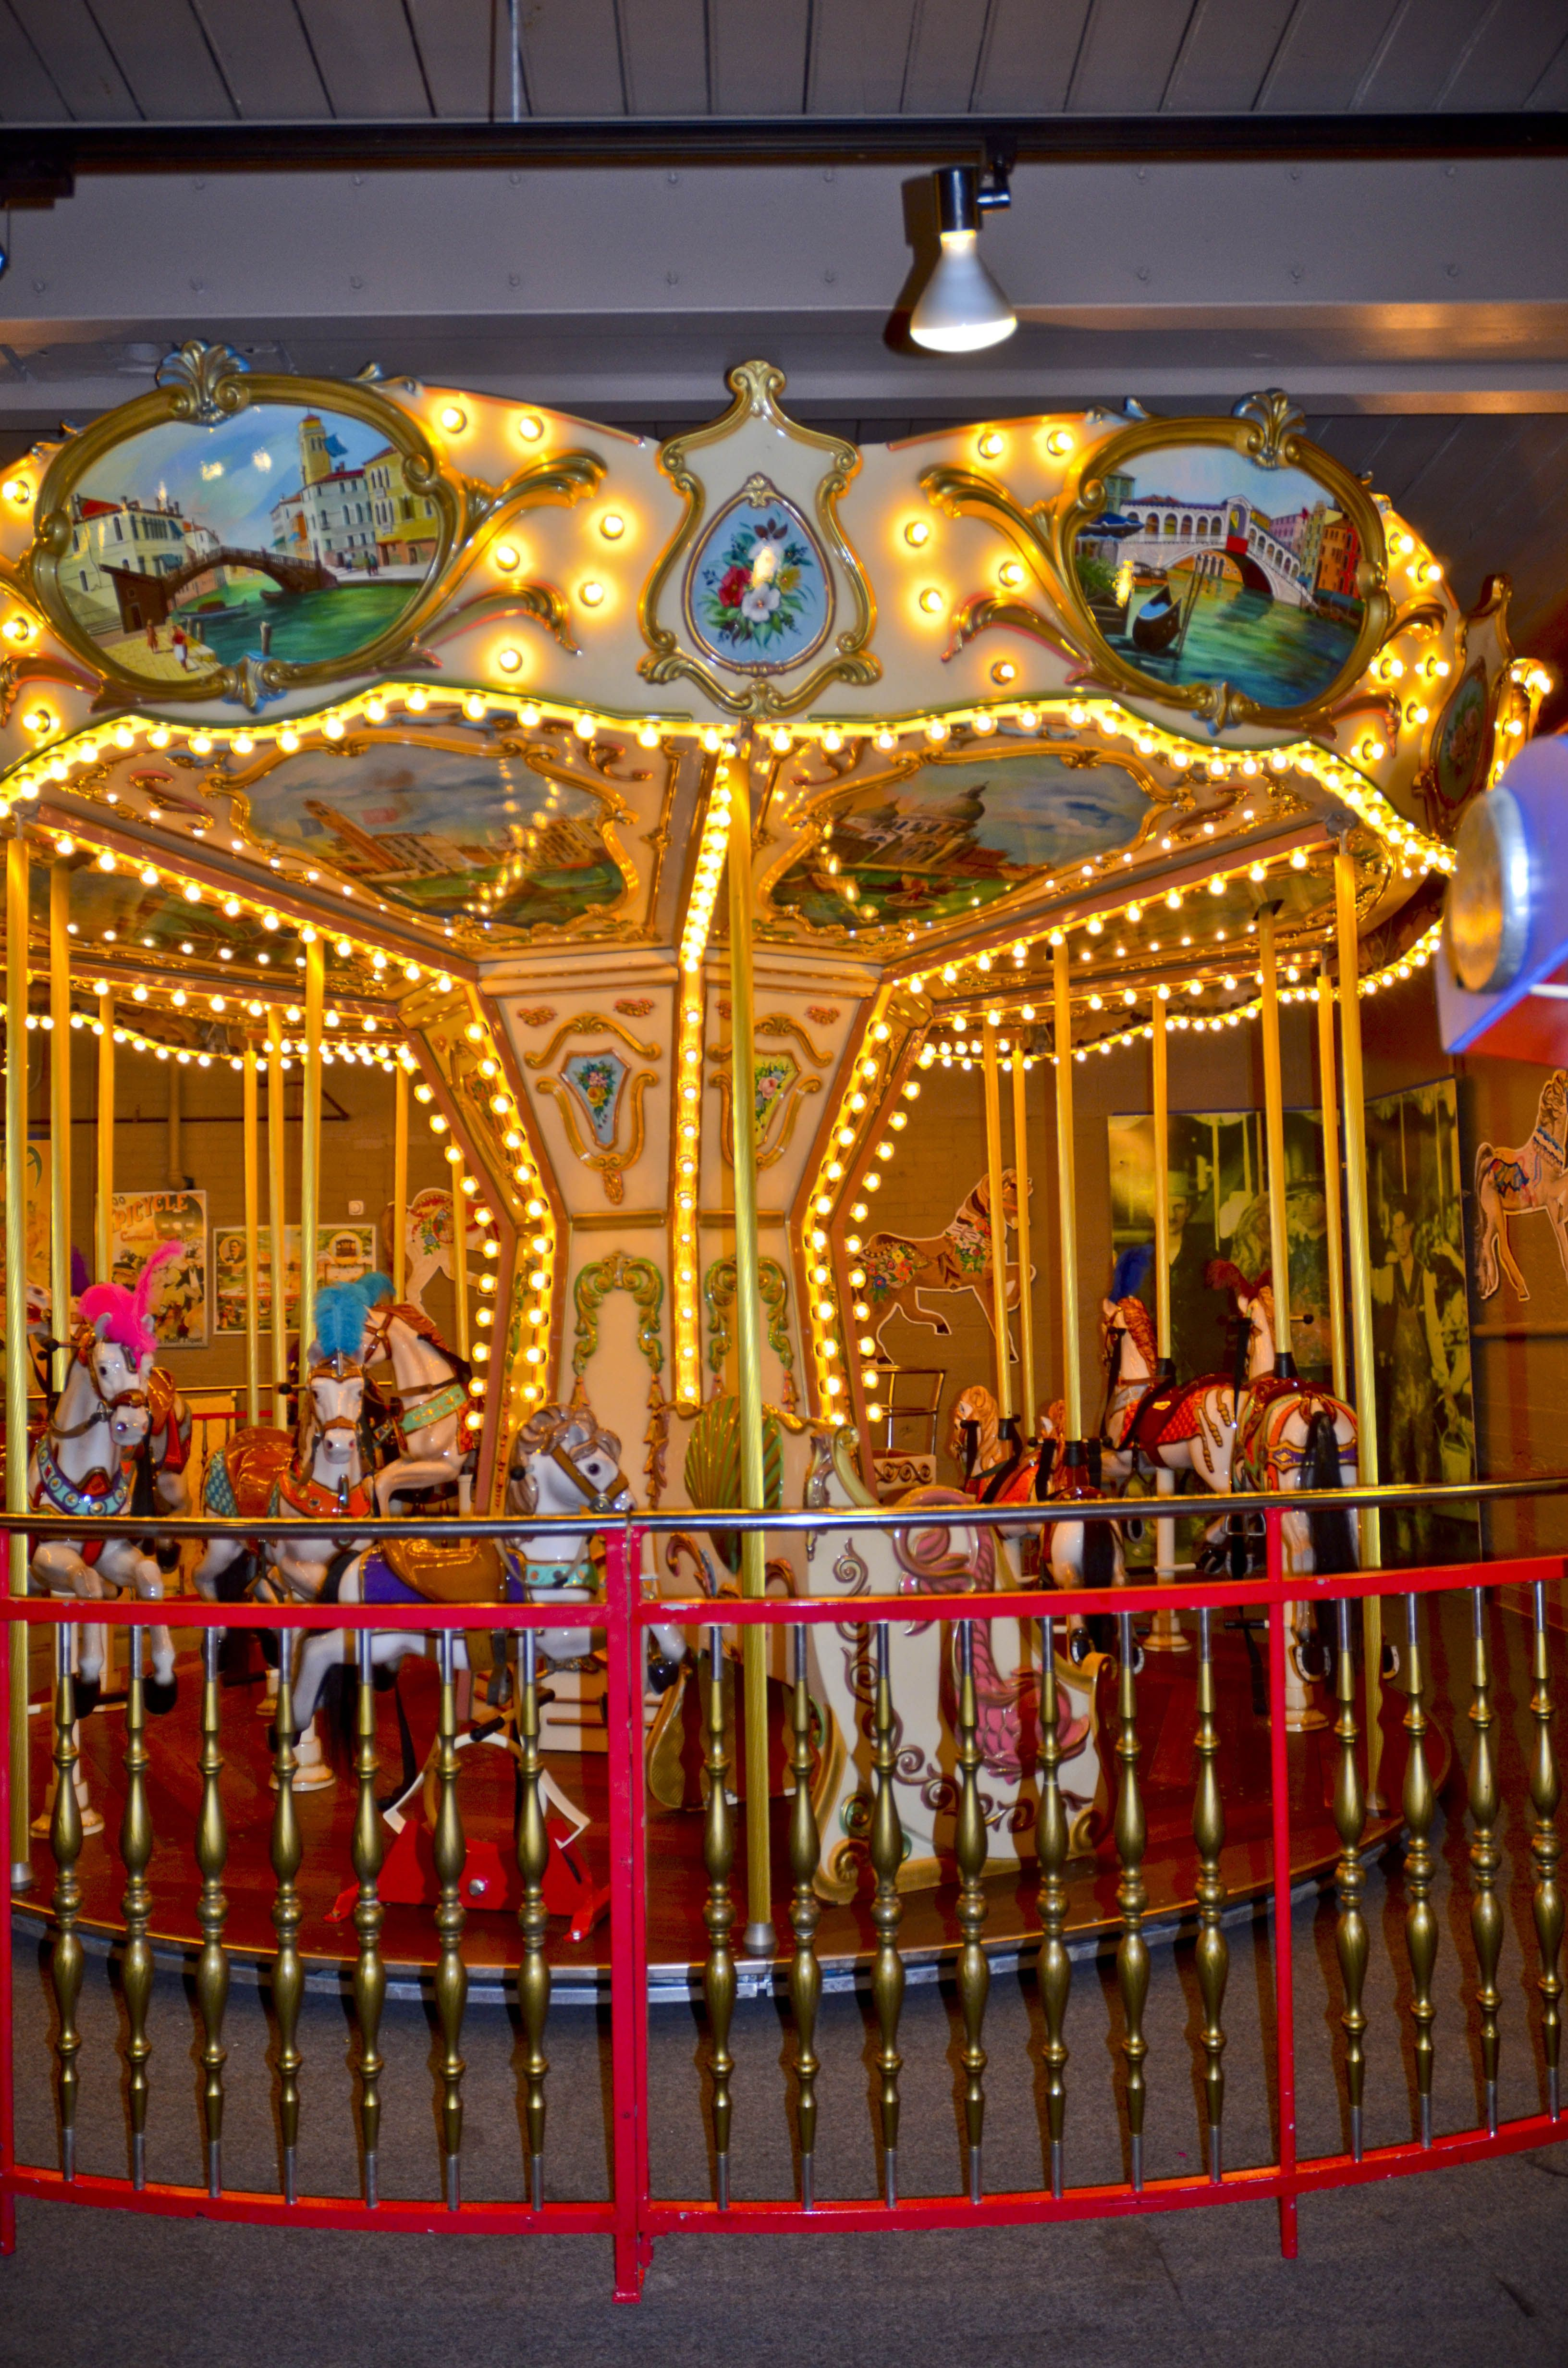 New England Carousel Museum 95 Riverside Ave., Bristol, CT 06010. (860) 585-5411. Fax: (860) 314-0483. Museum complex displays one of the largest collections of carousel art in the country, changing art shows and the Museum of Fire History on 2nd floor. Magical place for individuals and groups. Guided tours, group tours, facility rental, birthday parties, gift shop, and youth group sleepovers.